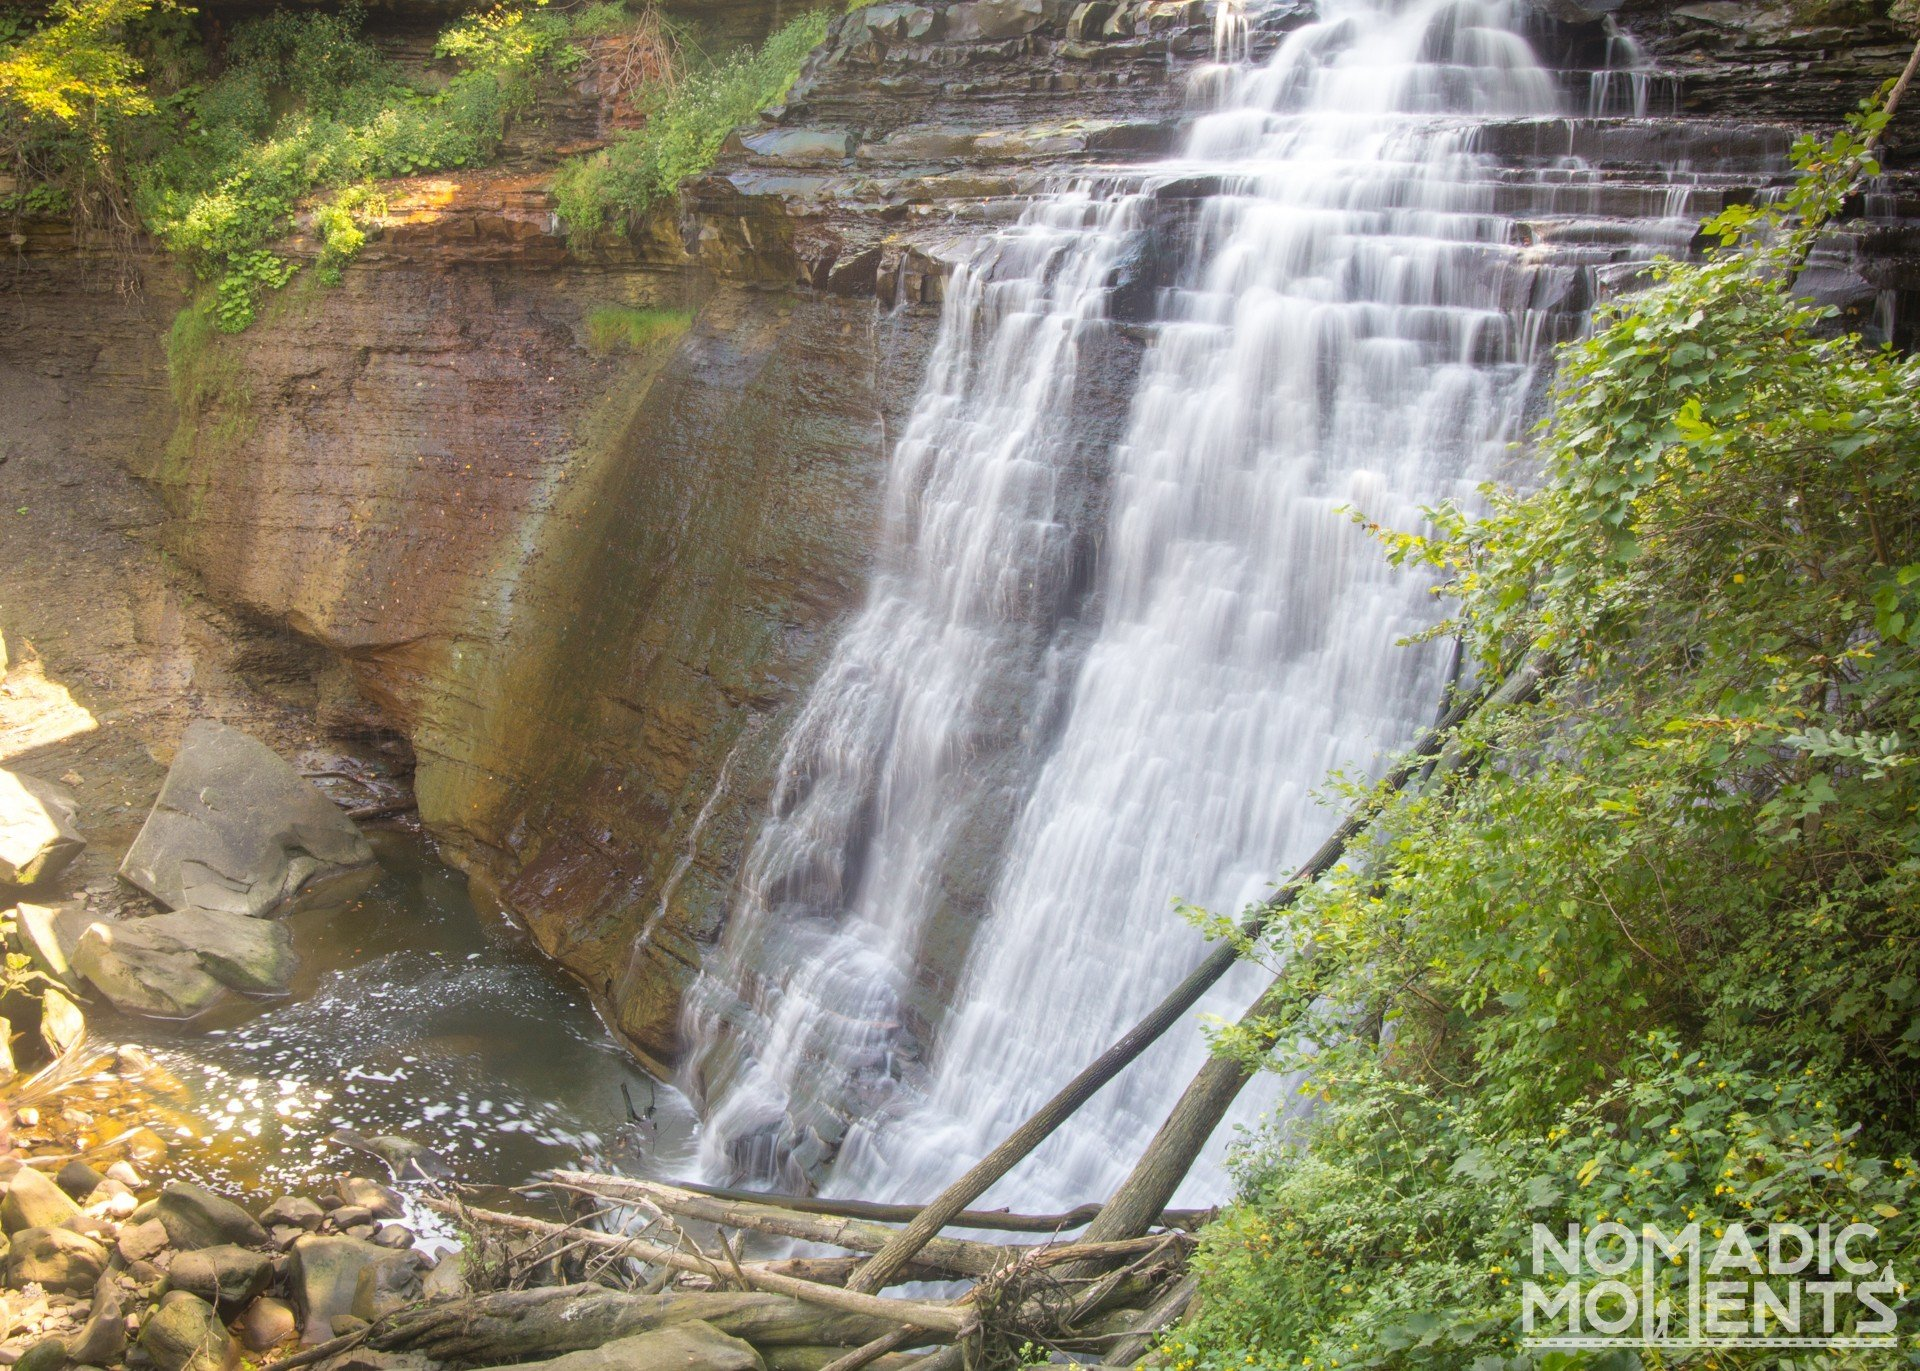 Visiting Cuyahoga Valley and Brandywine Falls